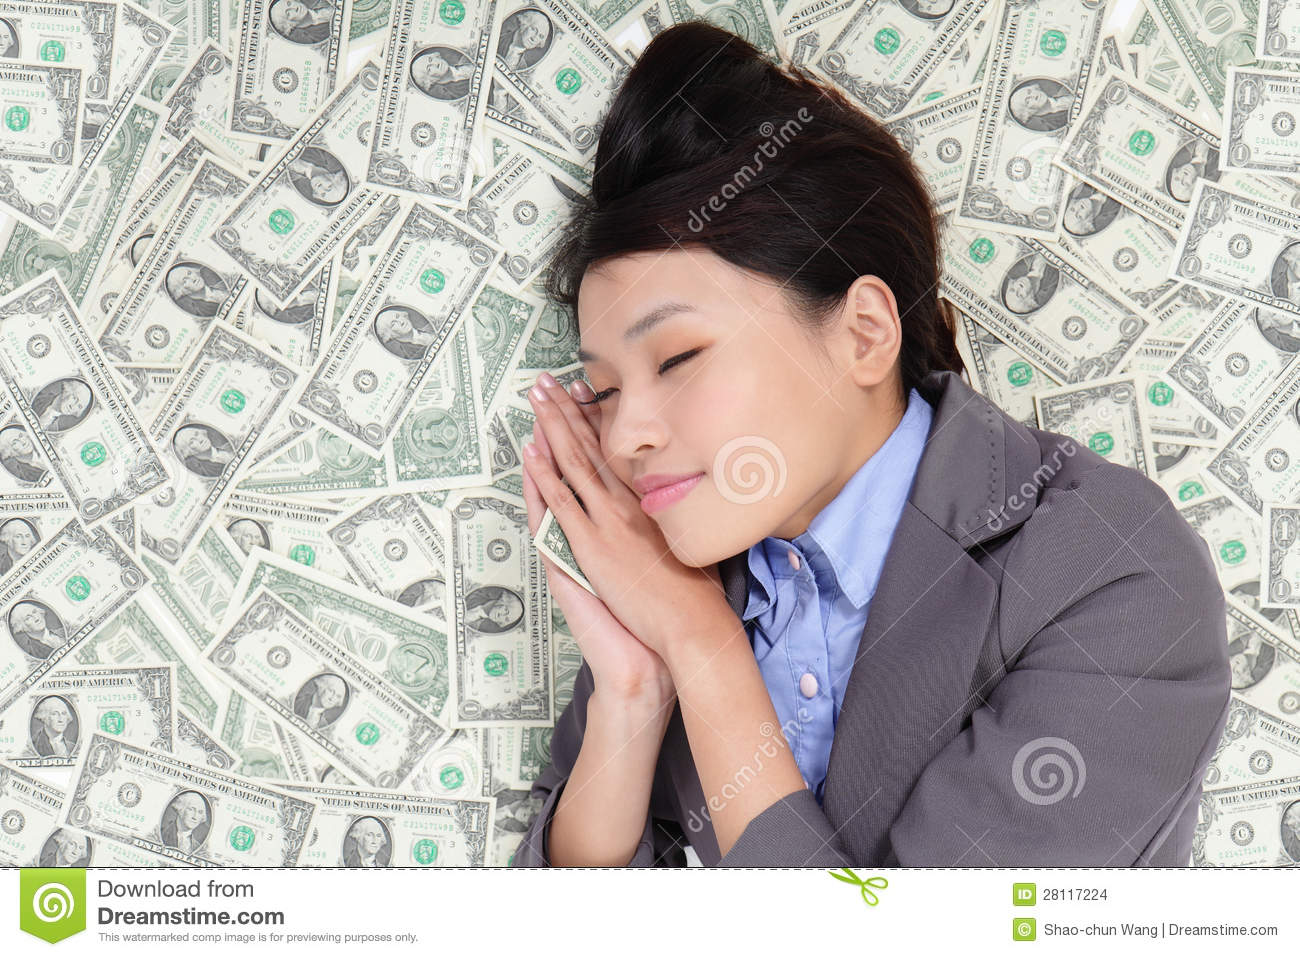 business-woman-sleeping-money-bed-28117224.jpg